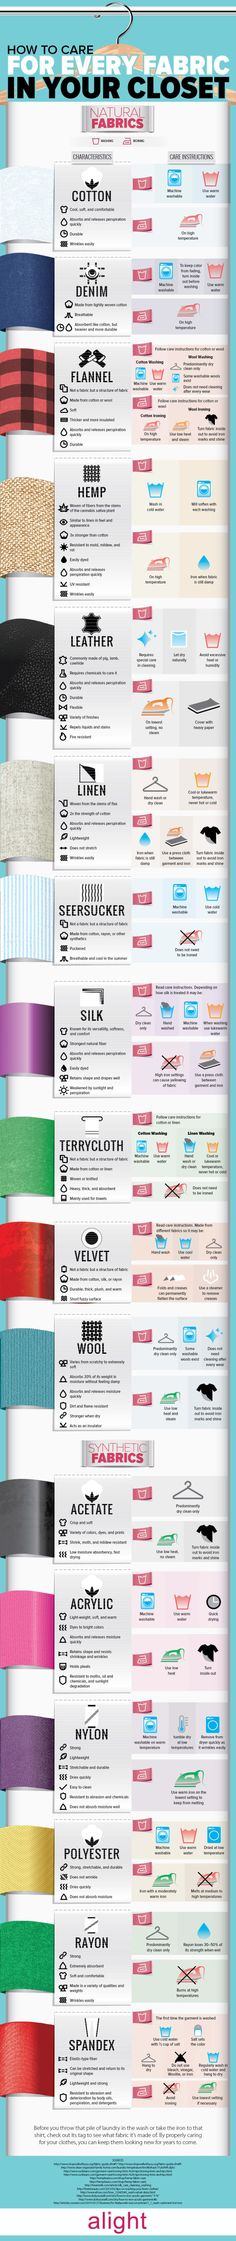 How to Care for Every Type of Clothing Fabric